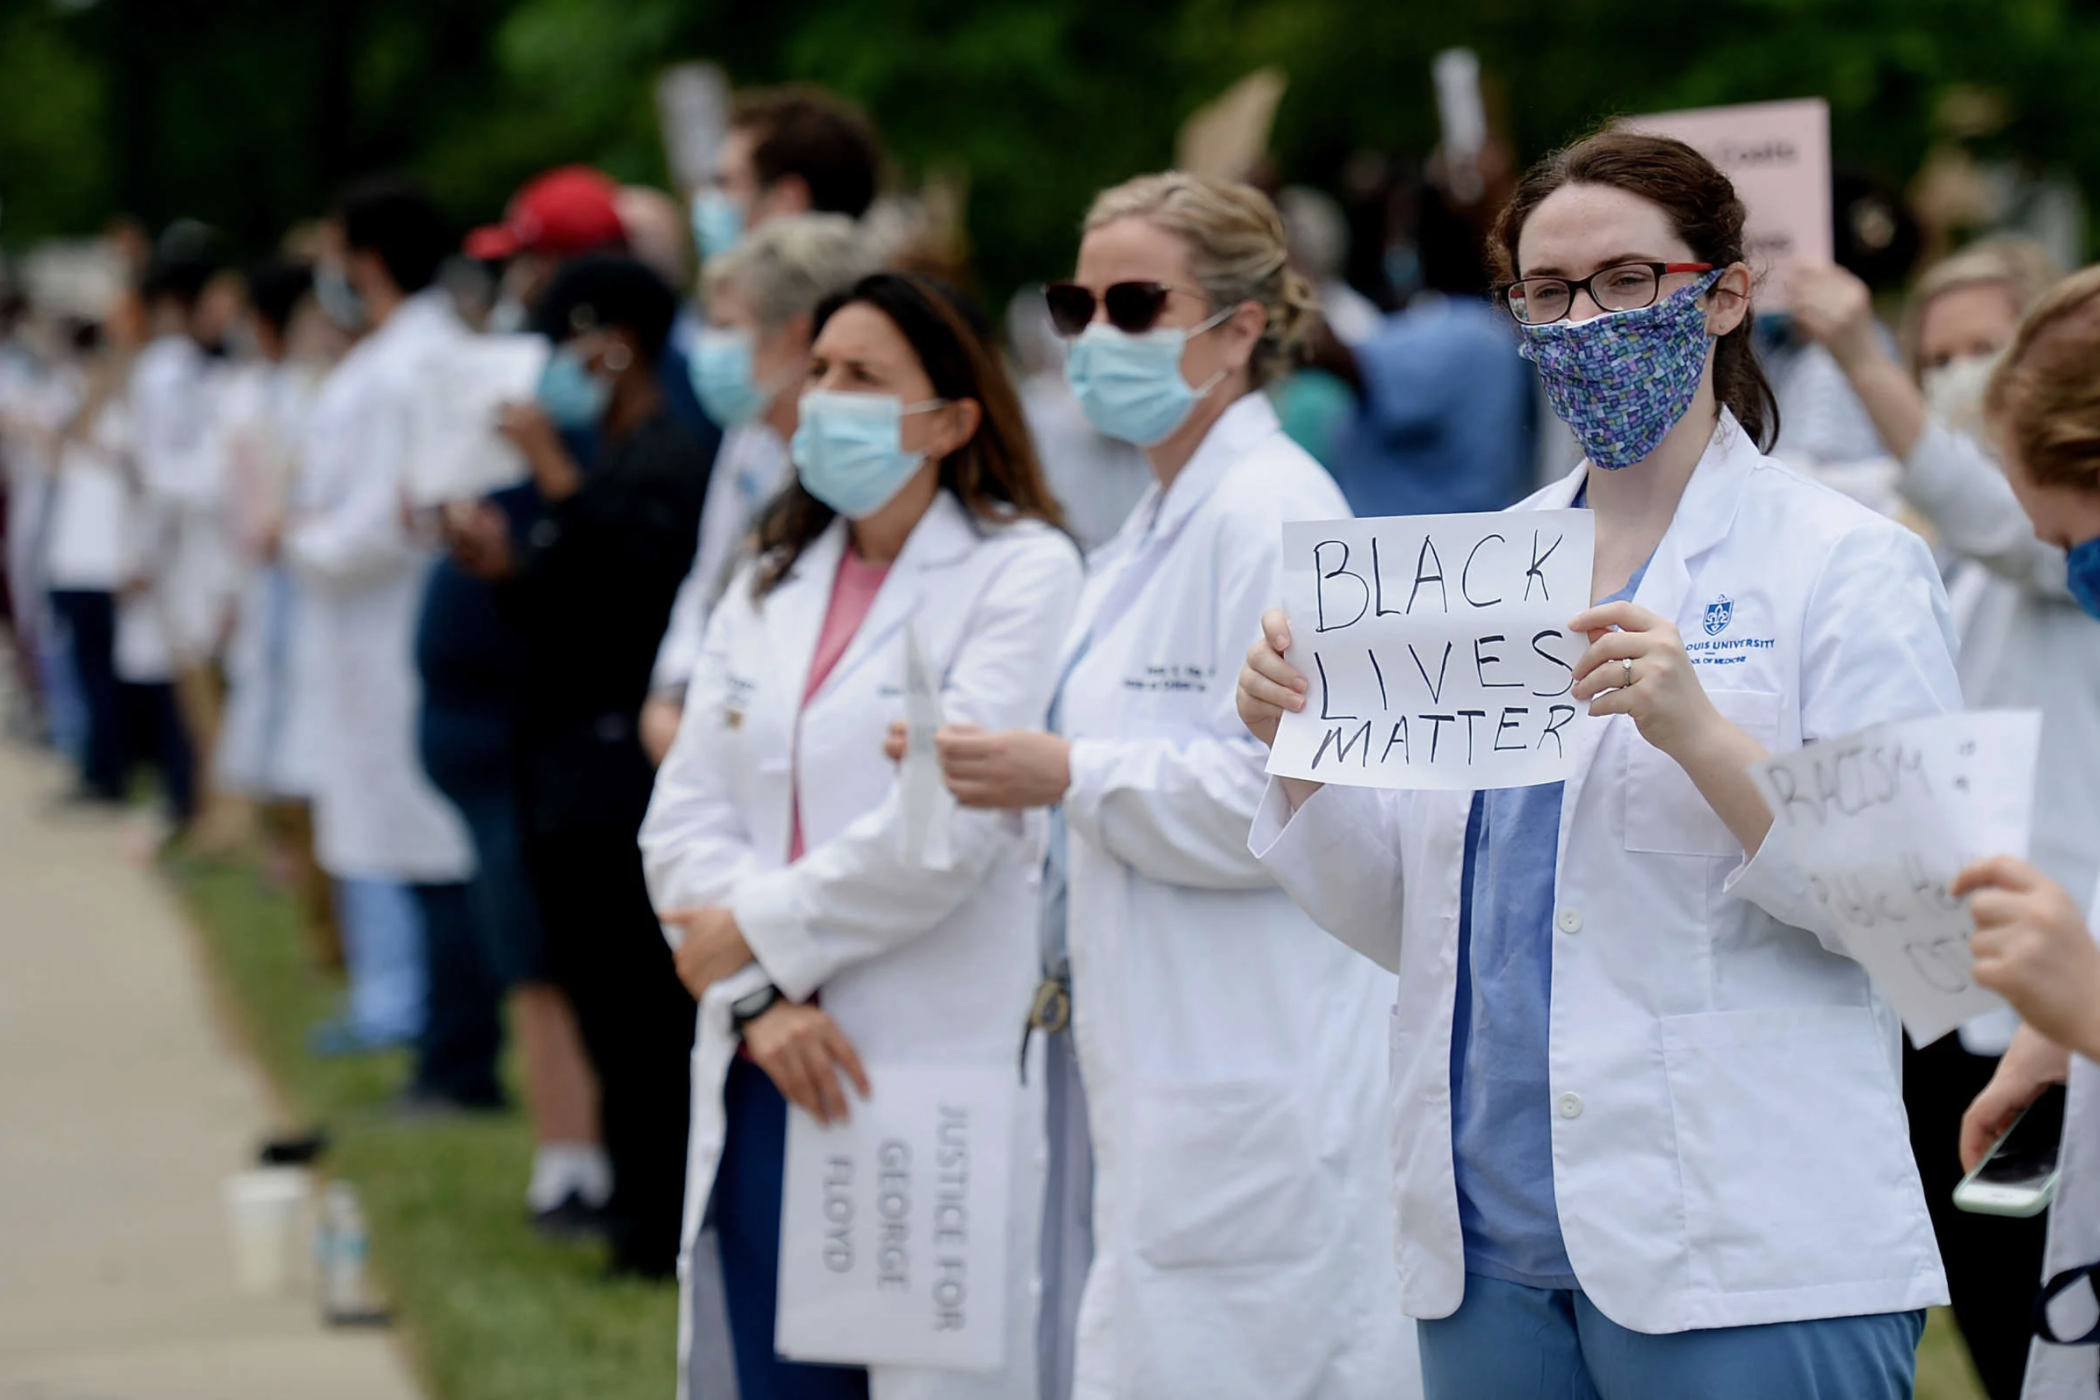 Several hundred doctors, nurses and medical professionals come together to protest against police brutality and the death of George Floyd at Barnes-Jewish Hospital on June 5, 2020, in St. Louis, Missouri.